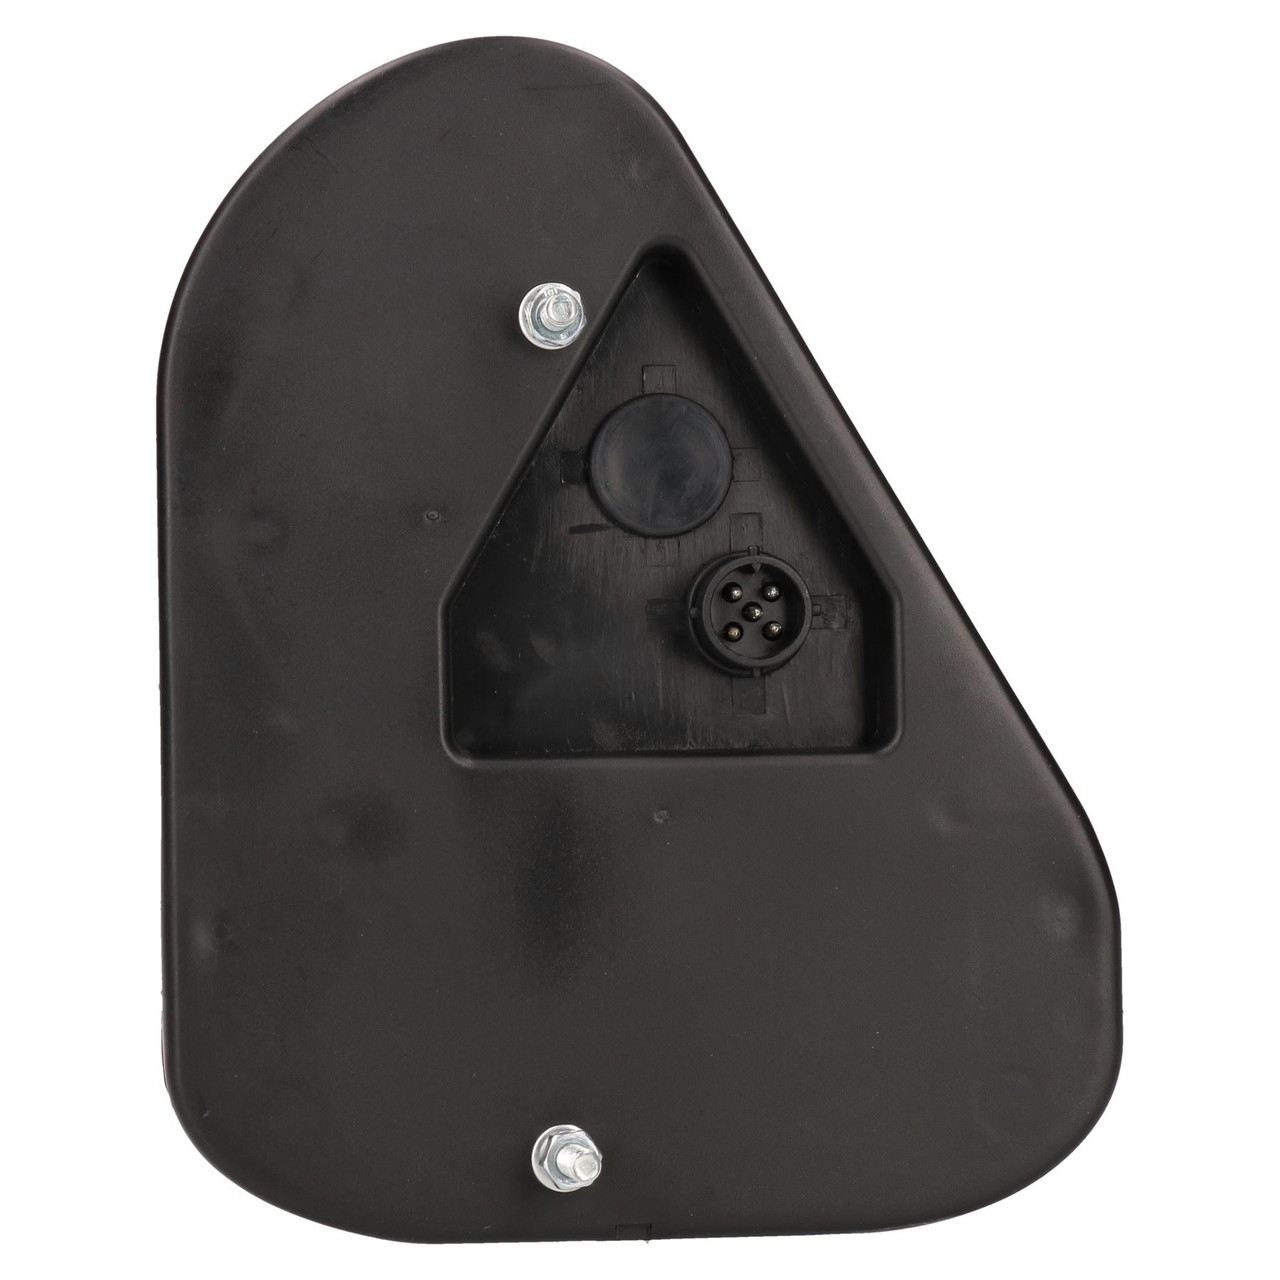 Trailer Caravan Right Triangular Light Replacement Lamp with Plug Indespension